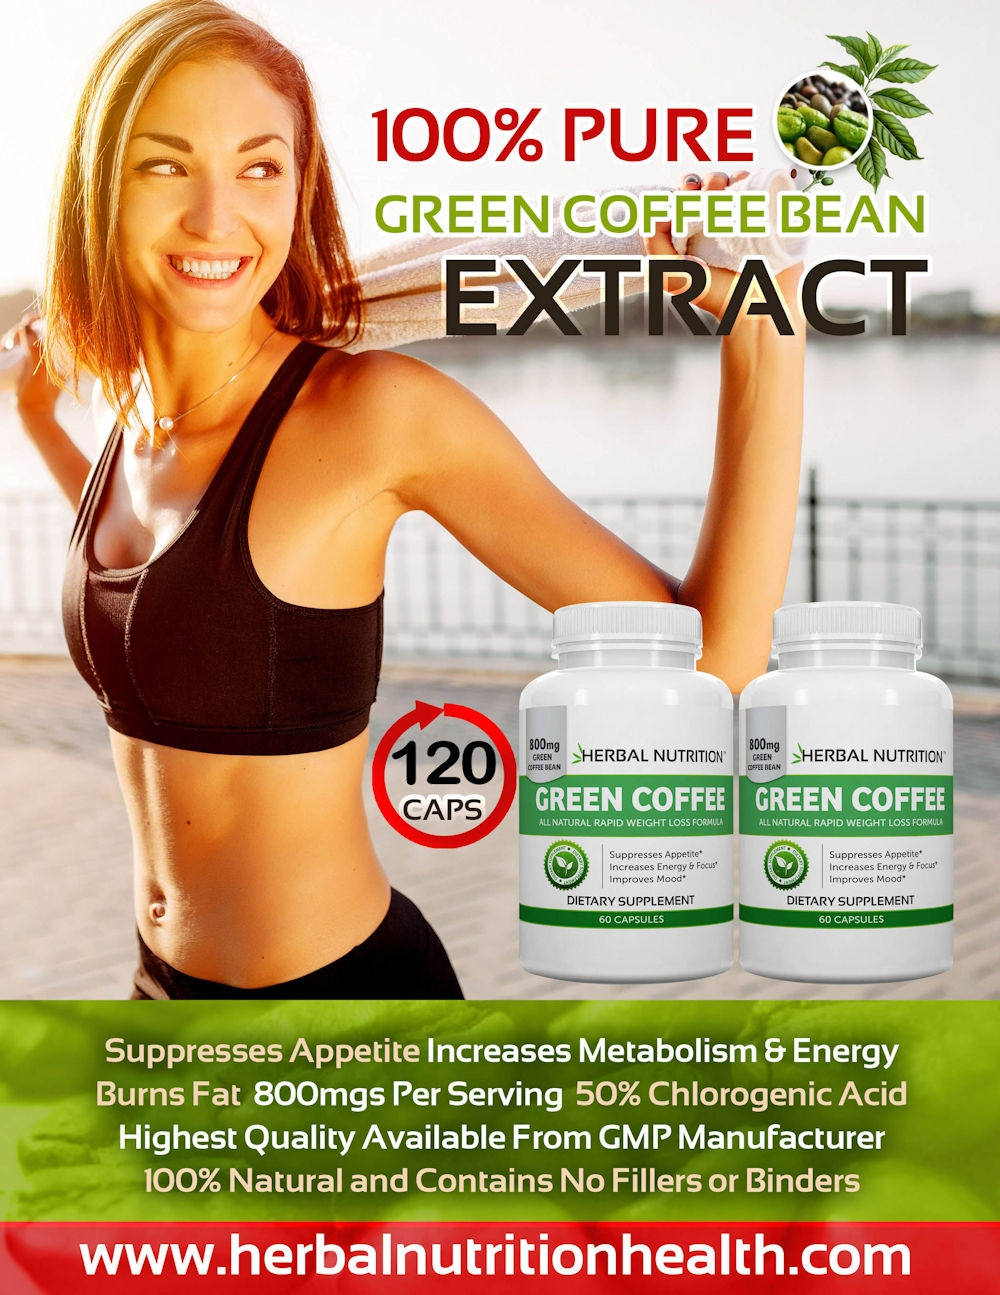 Green Coffee Bean Extract Graphic